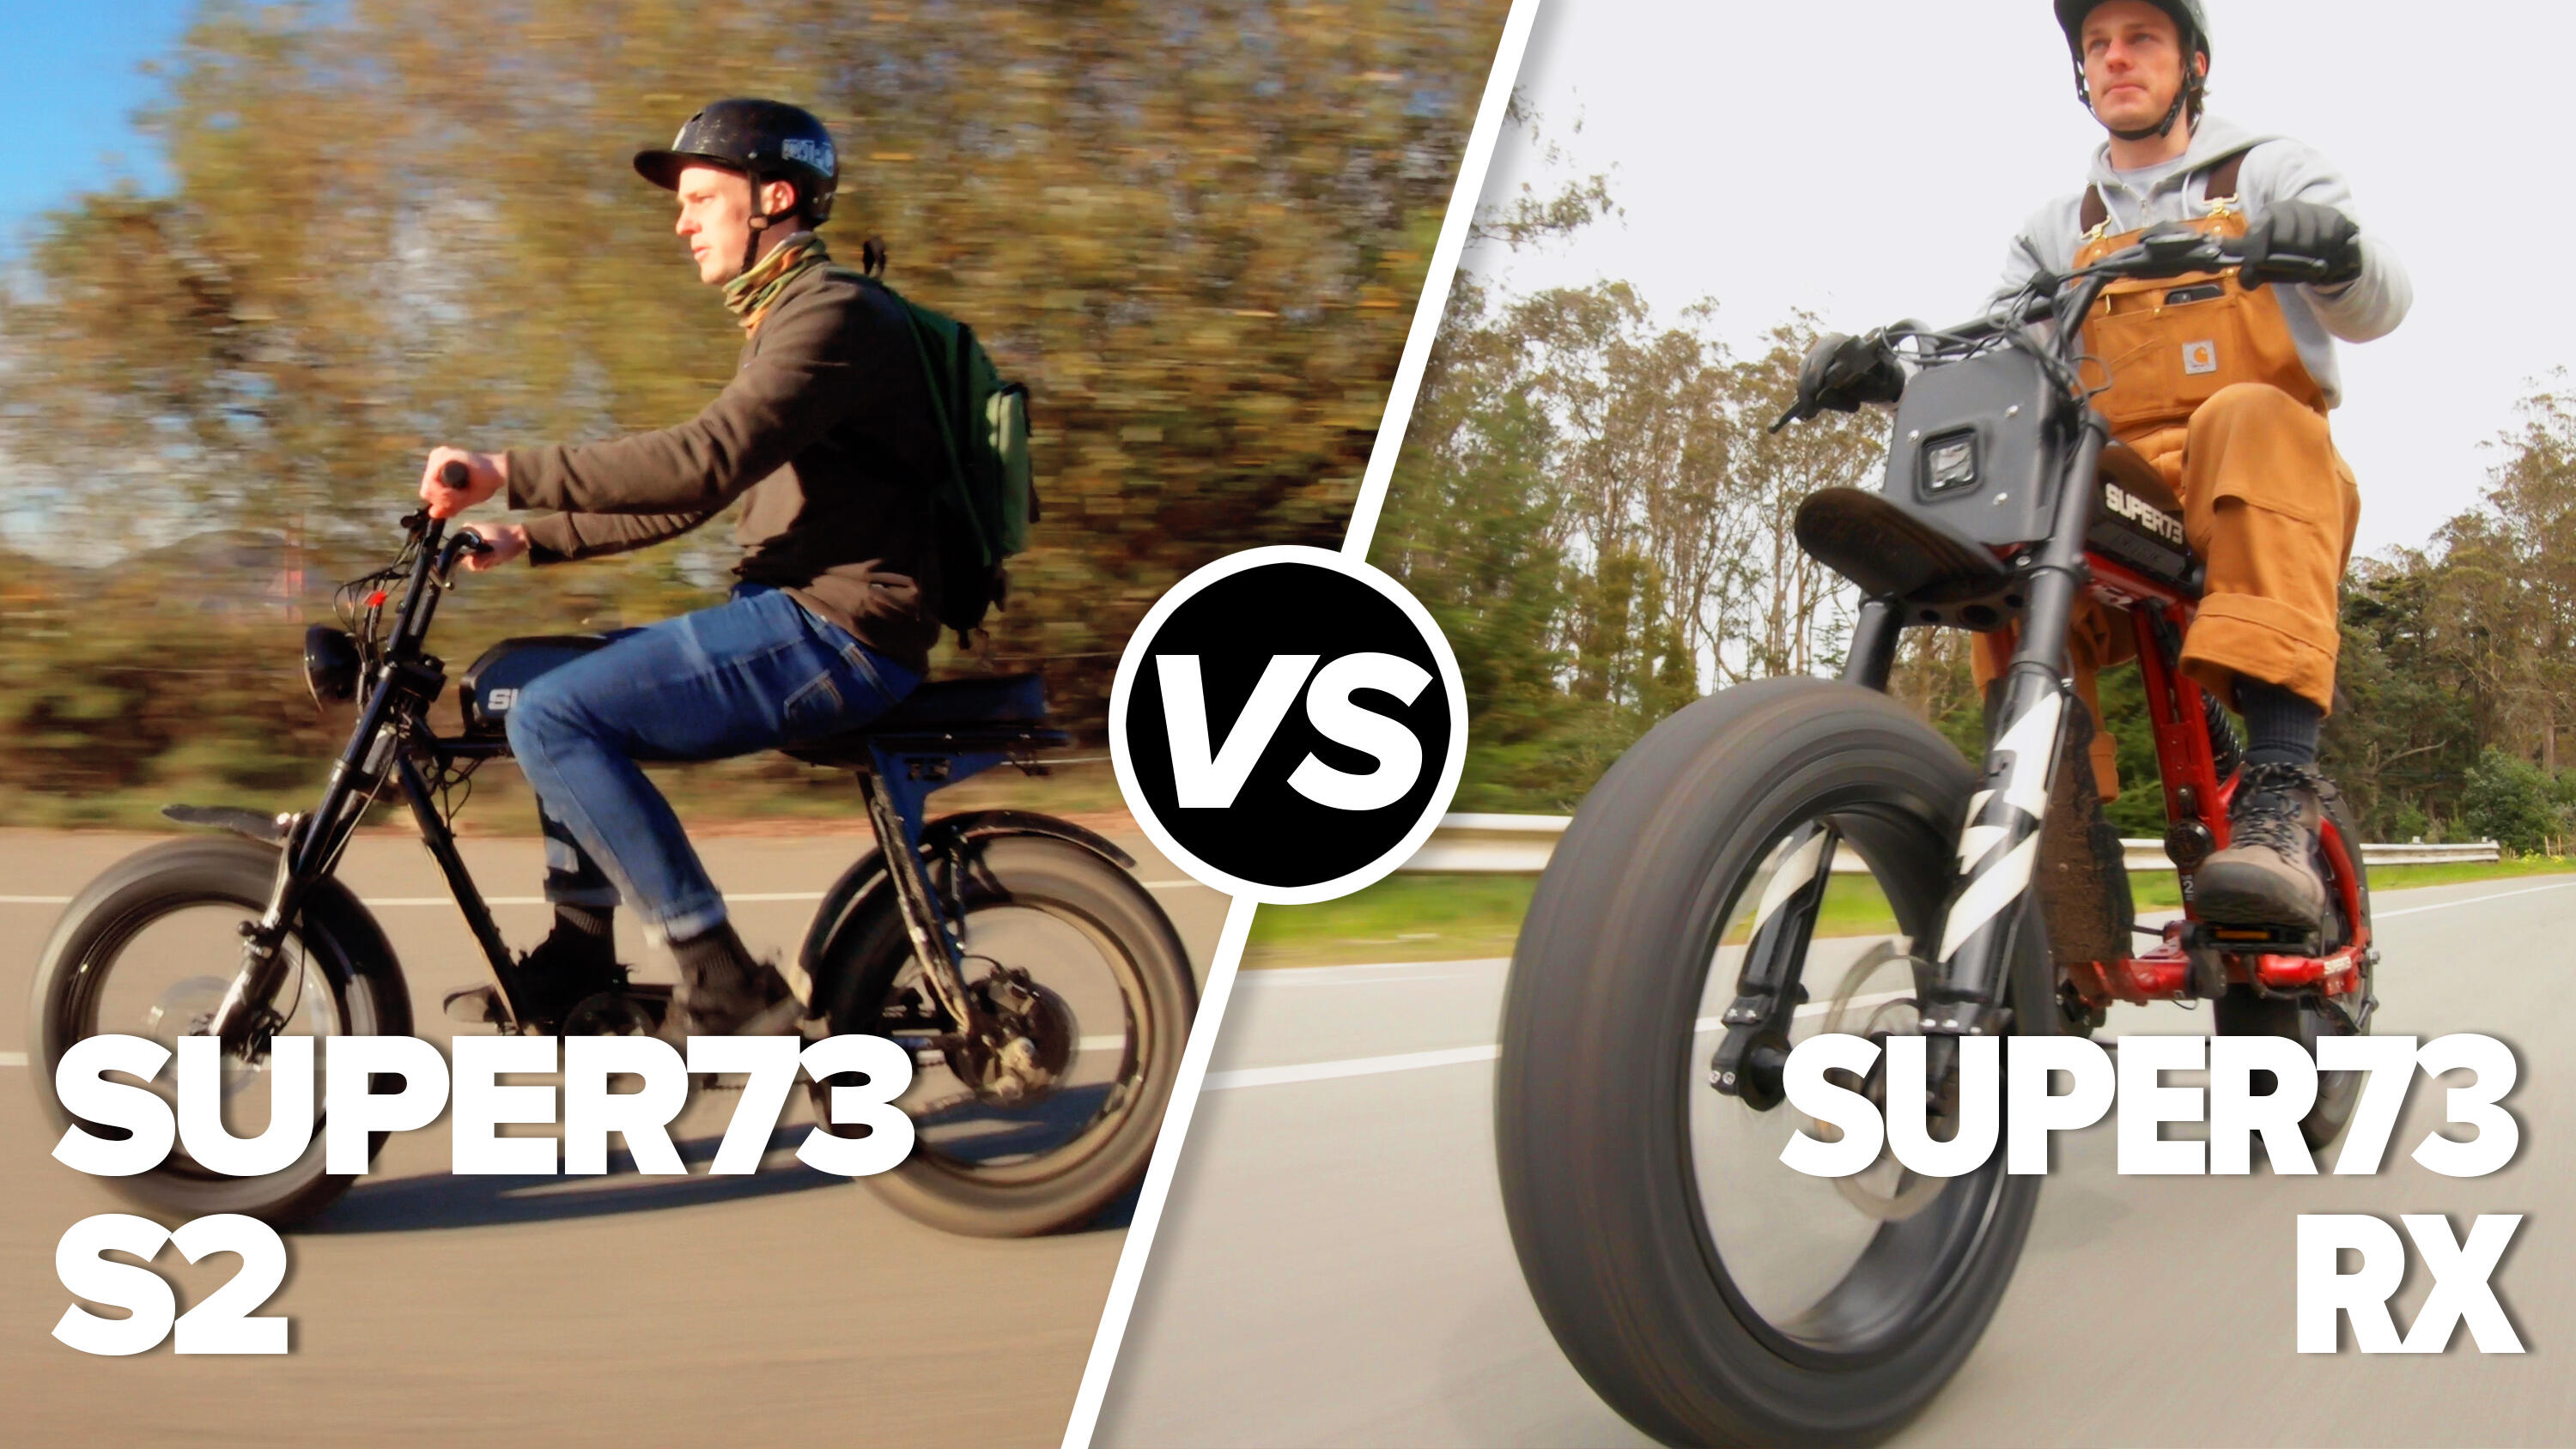 Video: Super73 S2 vs. Super73 RX electric bikes: Is the RX worth the extra $800?